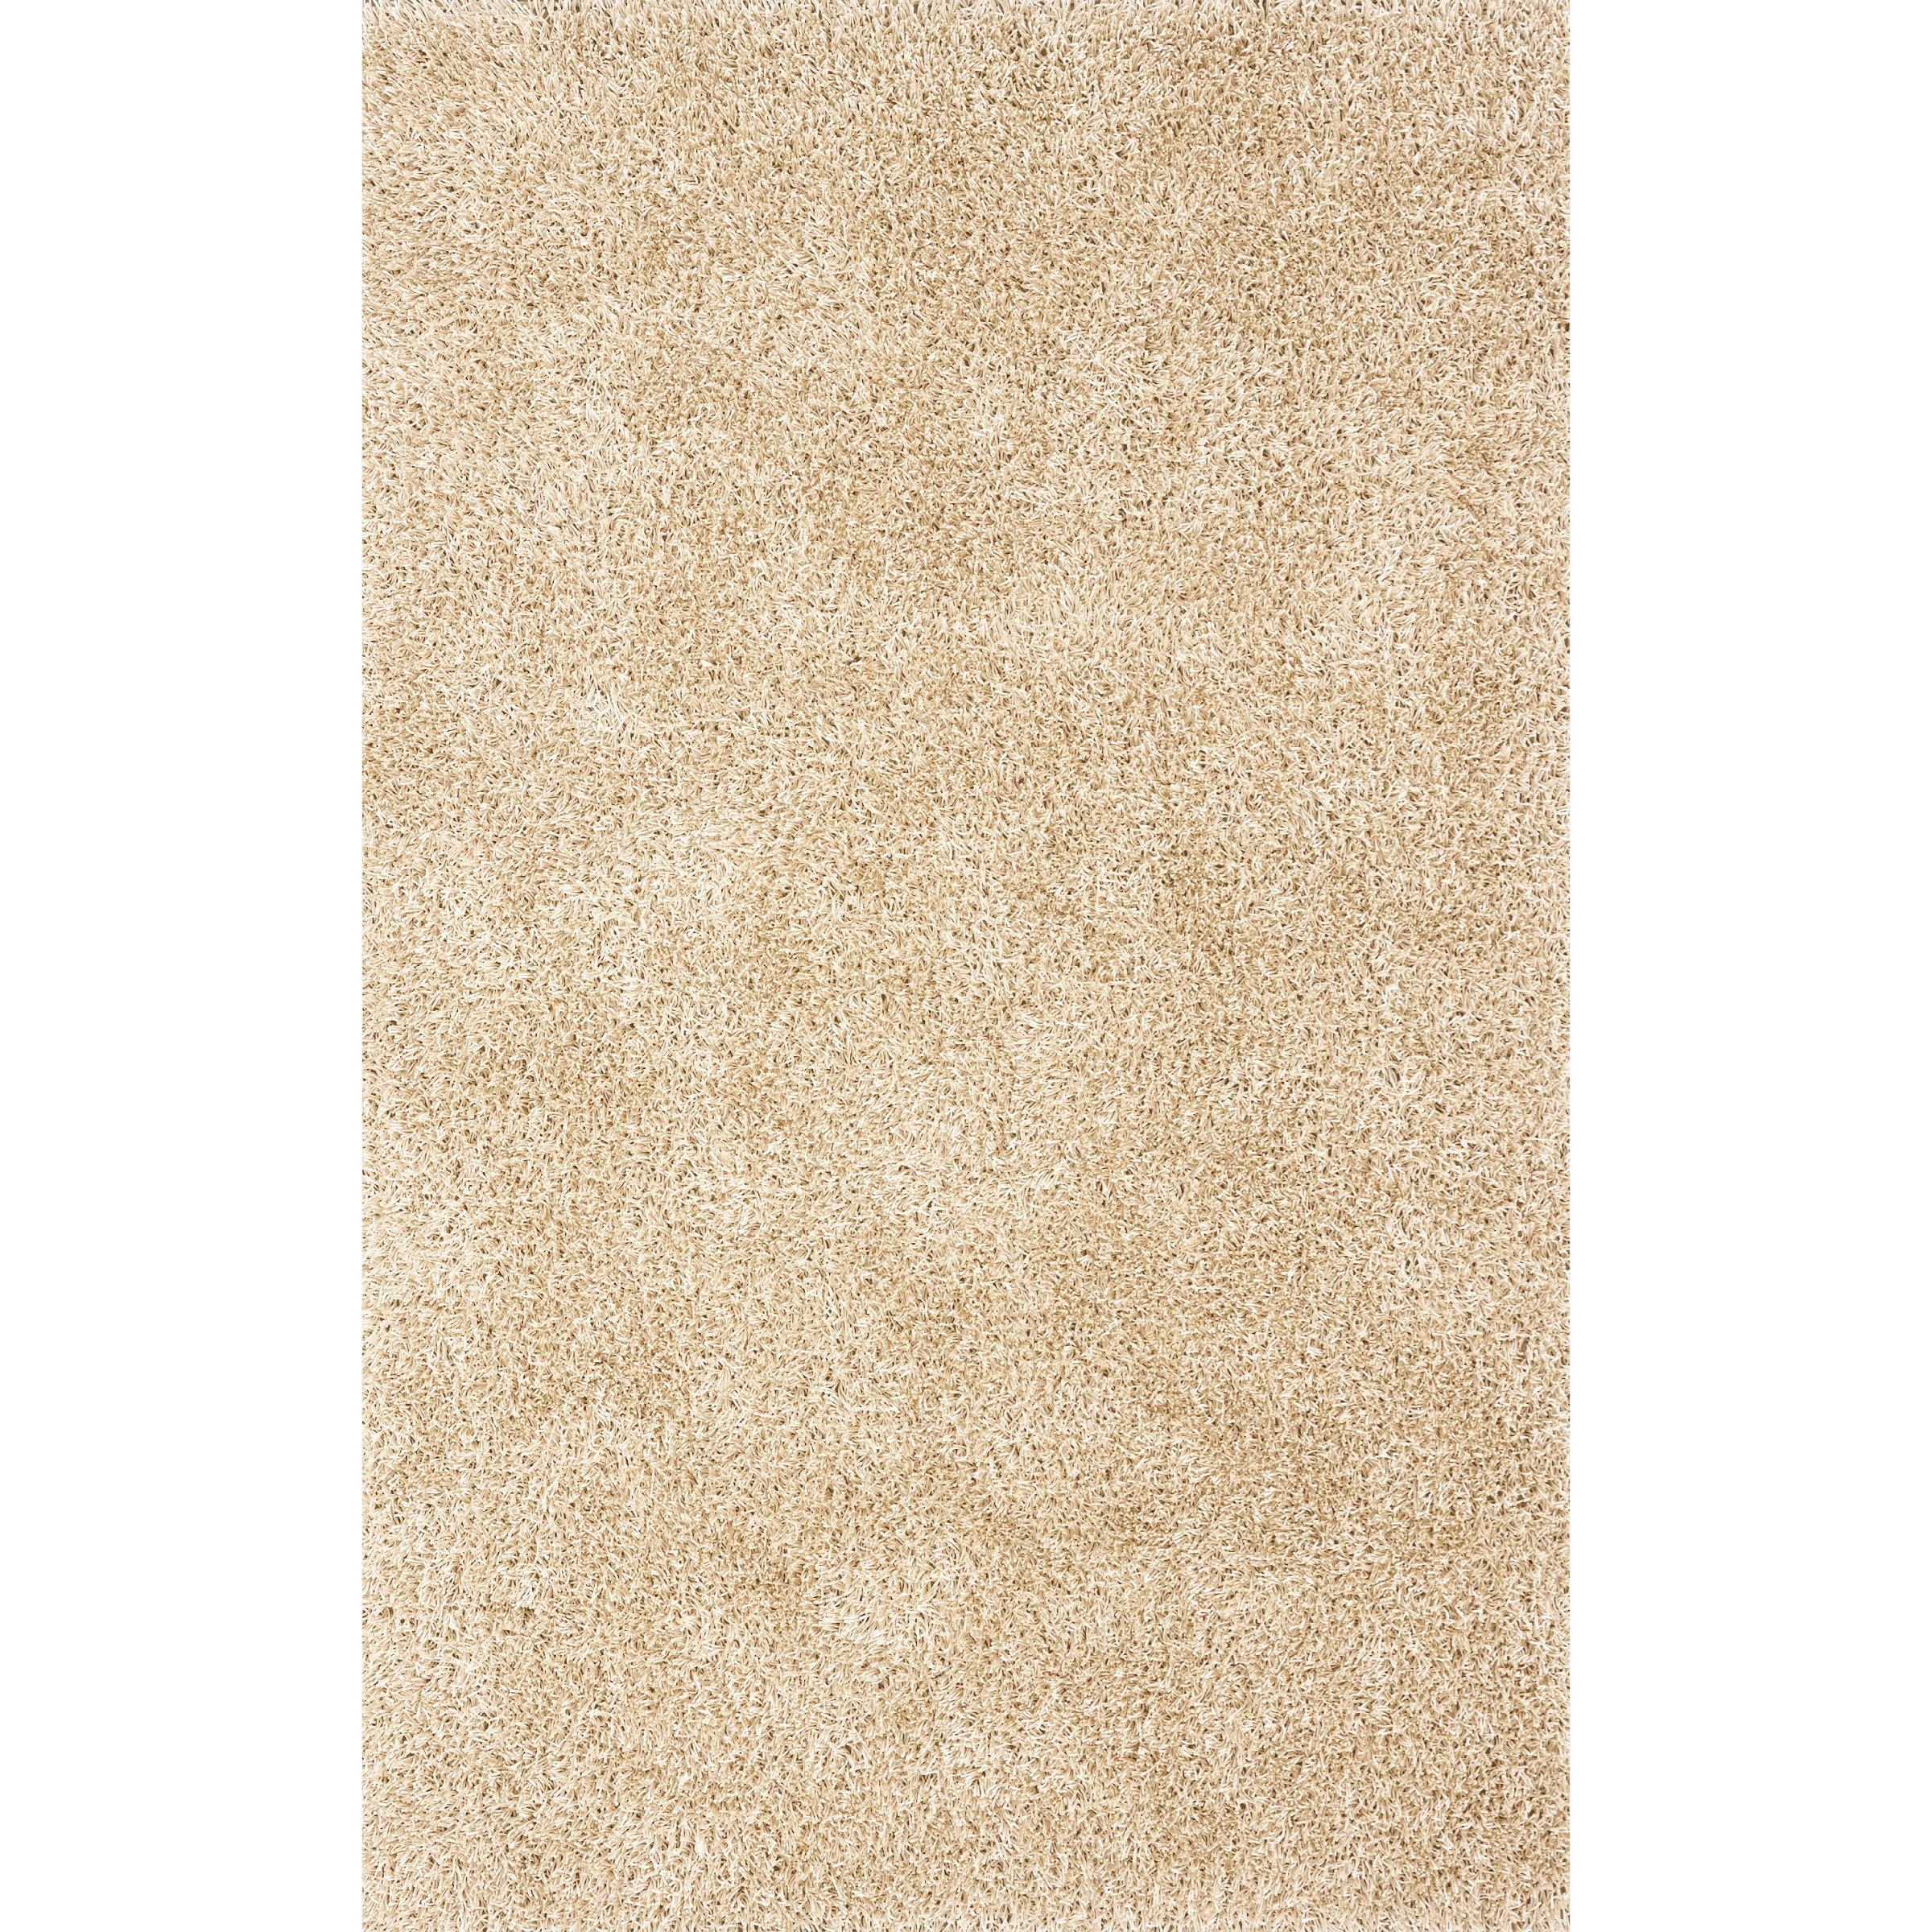 Dalyn Illusions Ivory 8'X10' Rug - Item Number: IL69IV8X10